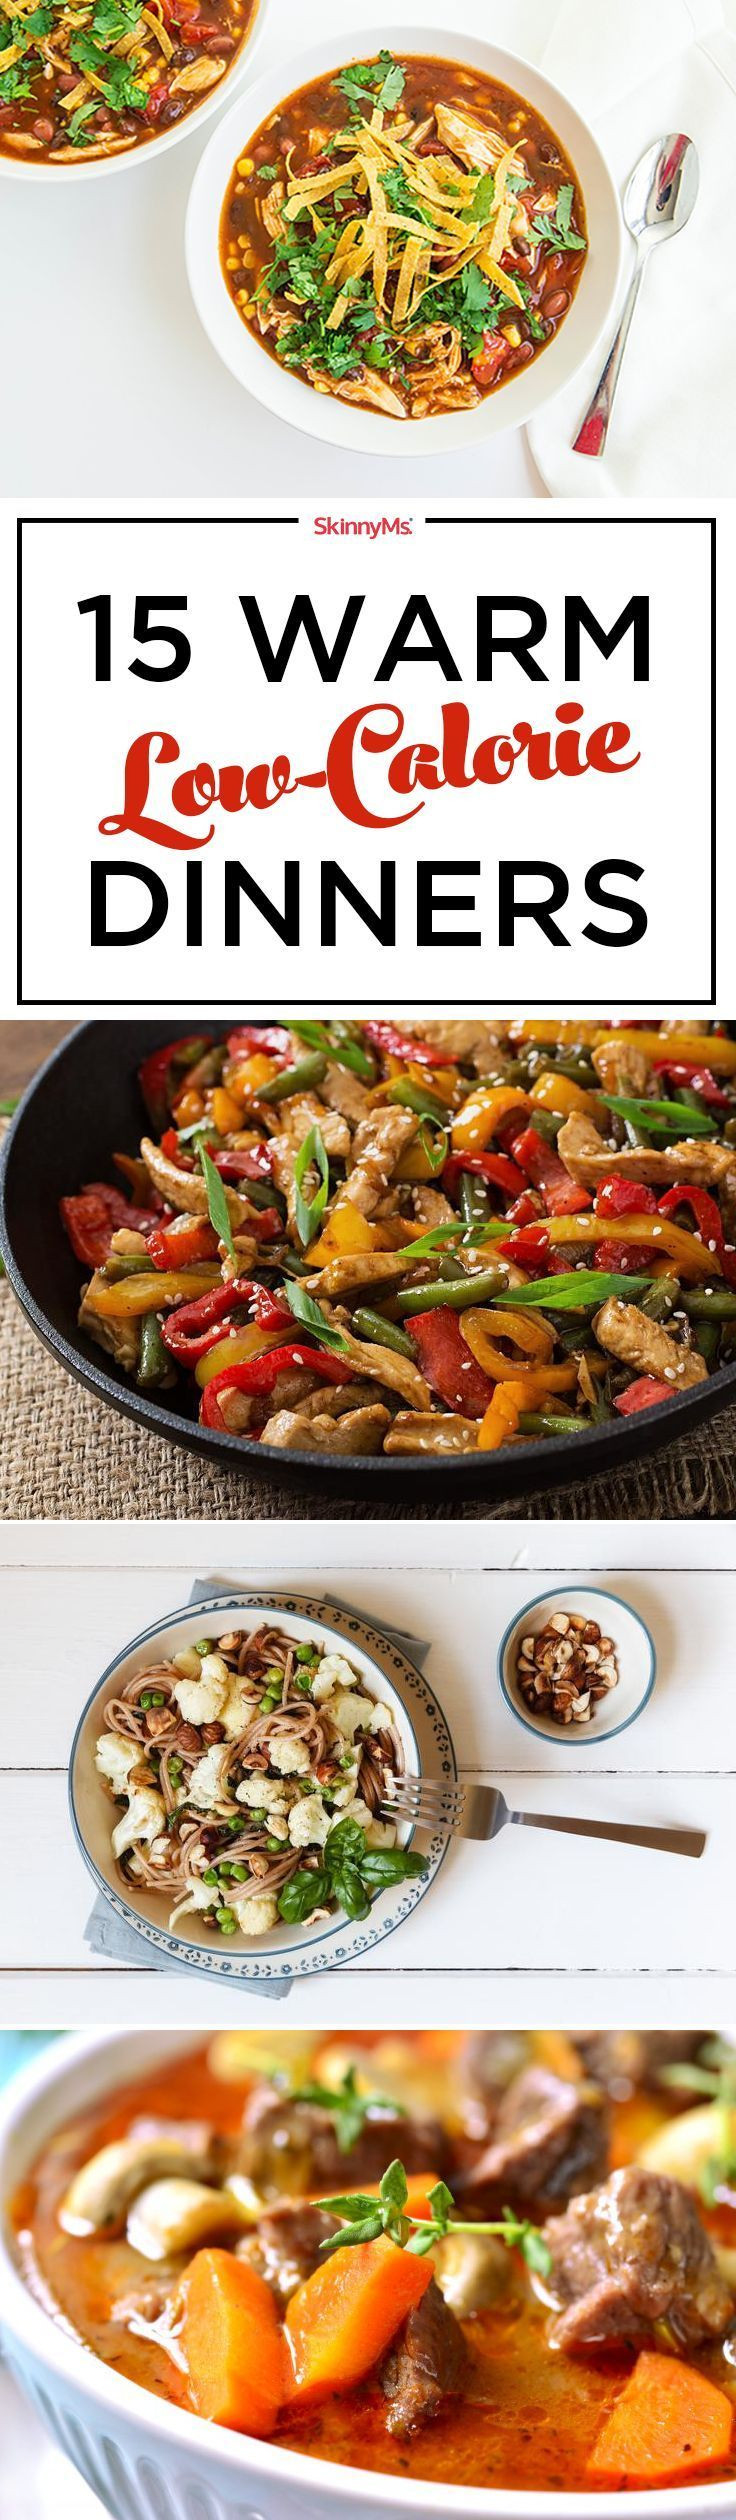 Low Calorie Dinners For Two  1240 best images about Low Calorie Options on Pinterest